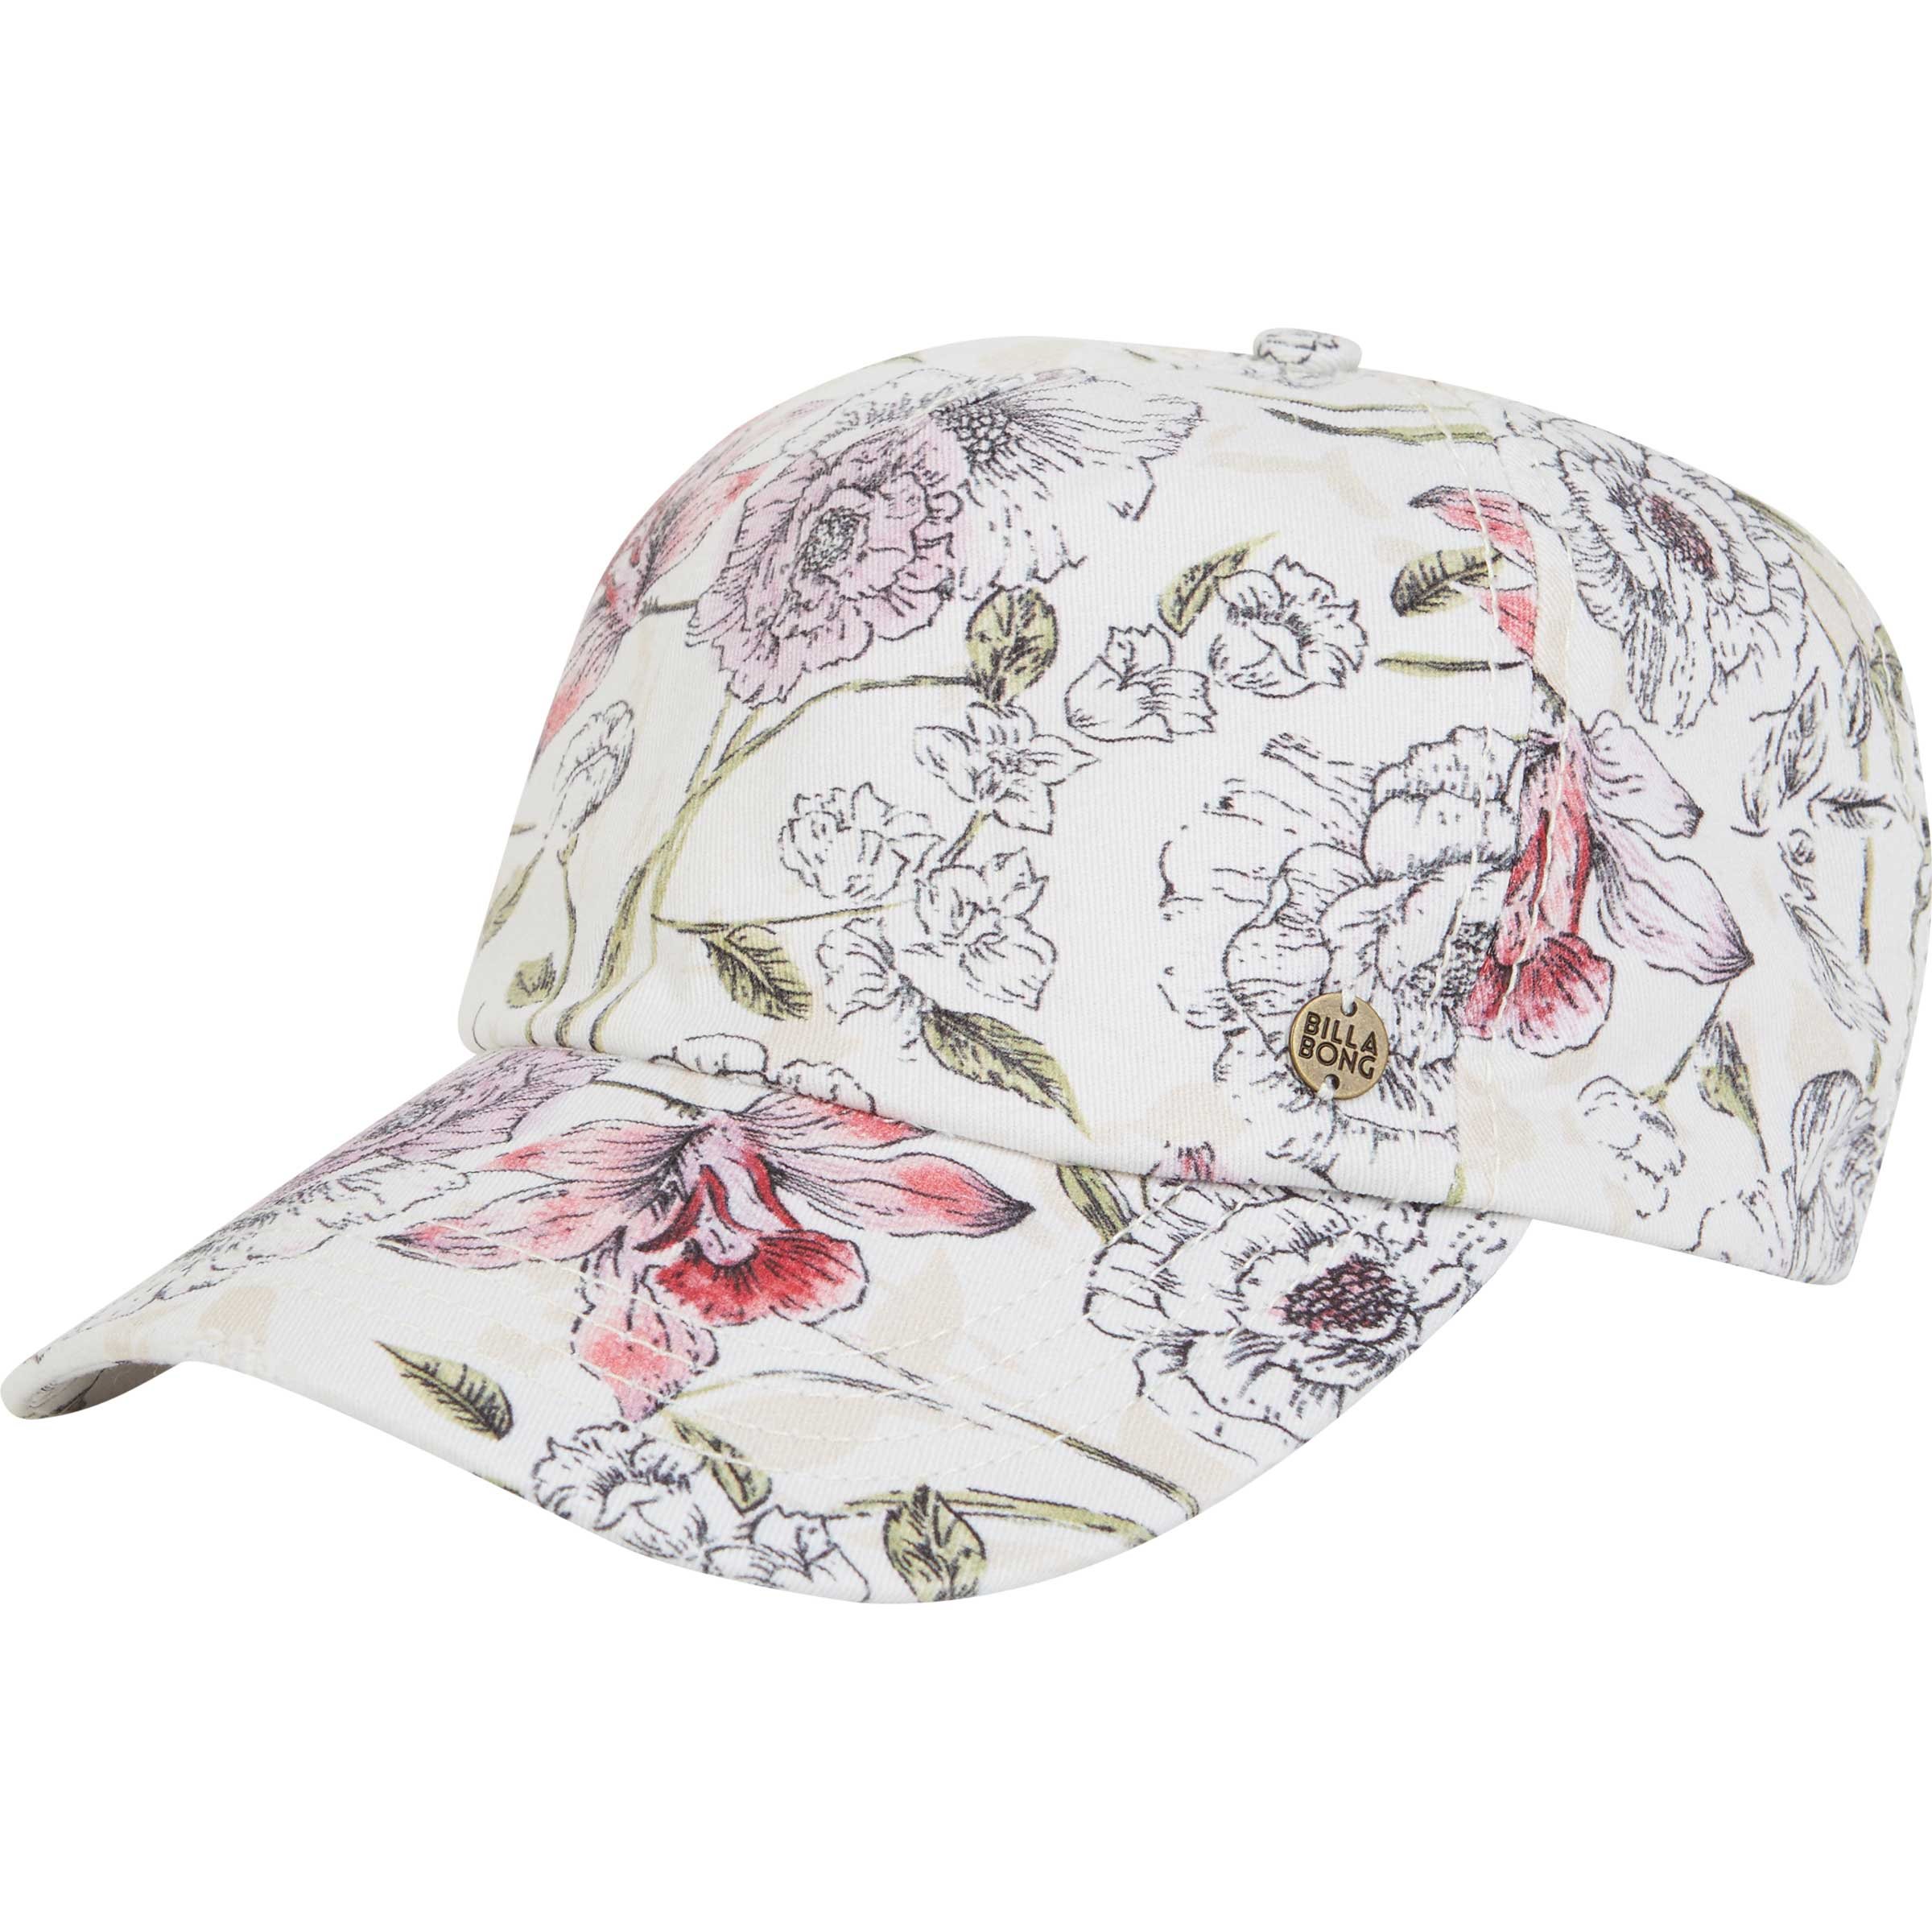 Billabong Beach Club Hat $22.95